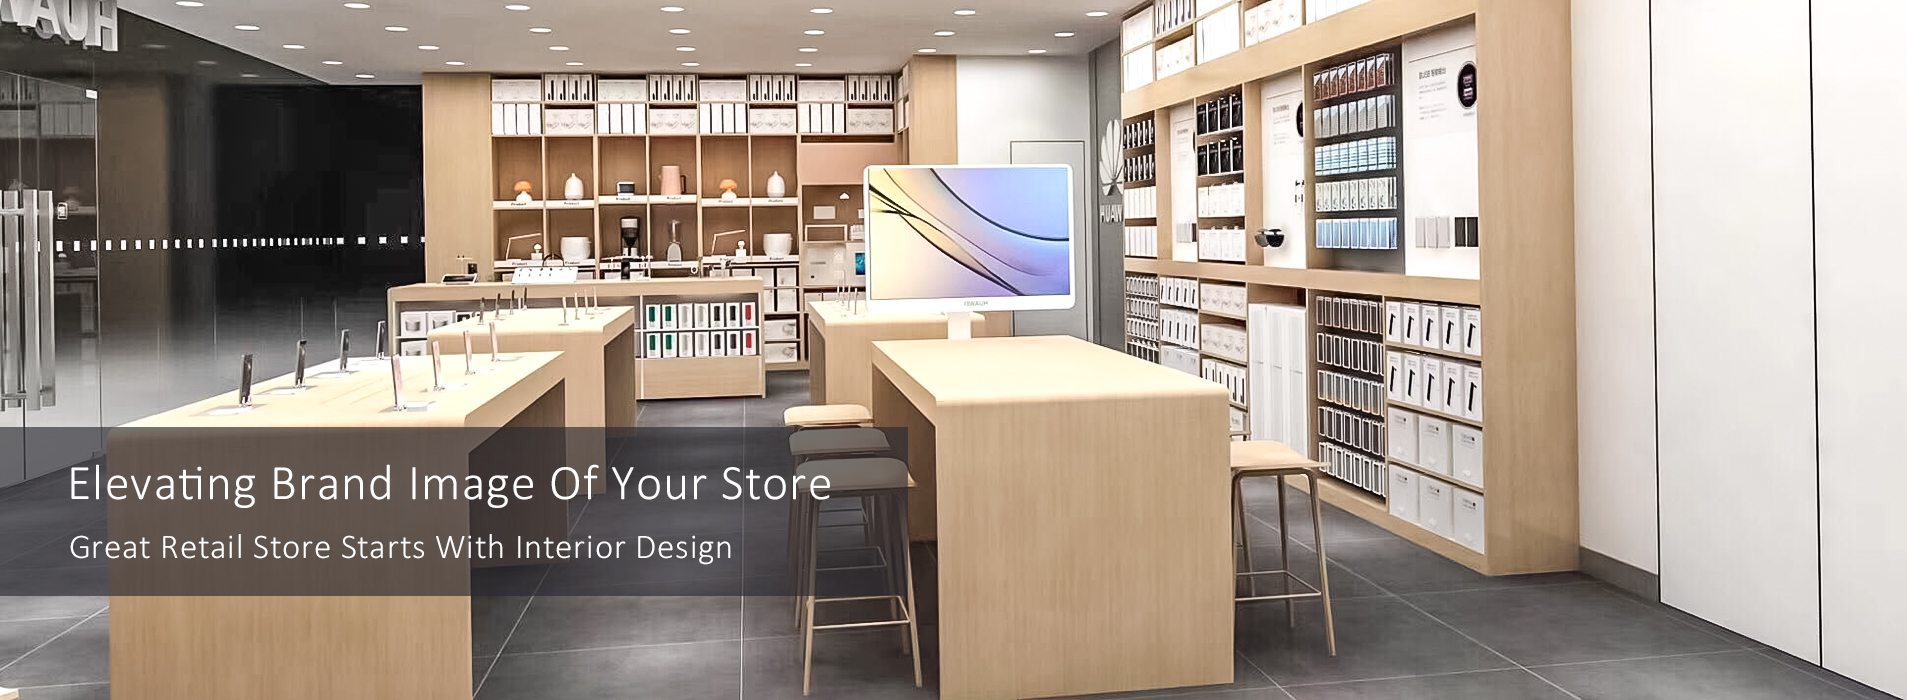 Great Retail Store Starts With Interior Design for Retail Electronic Store